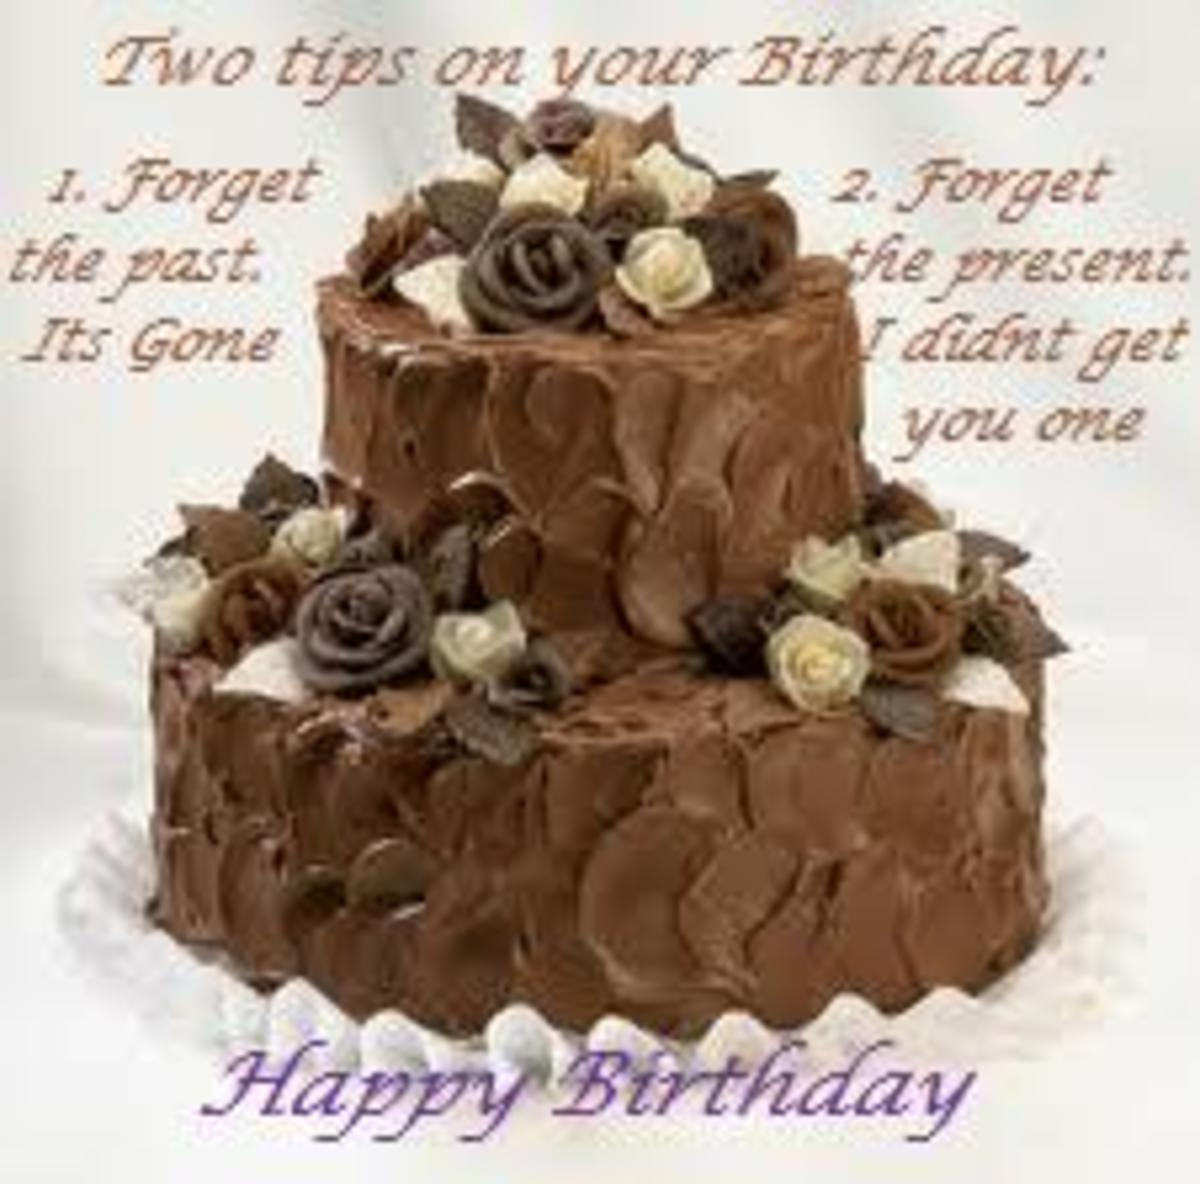 For more Birthday Pictures, click here..